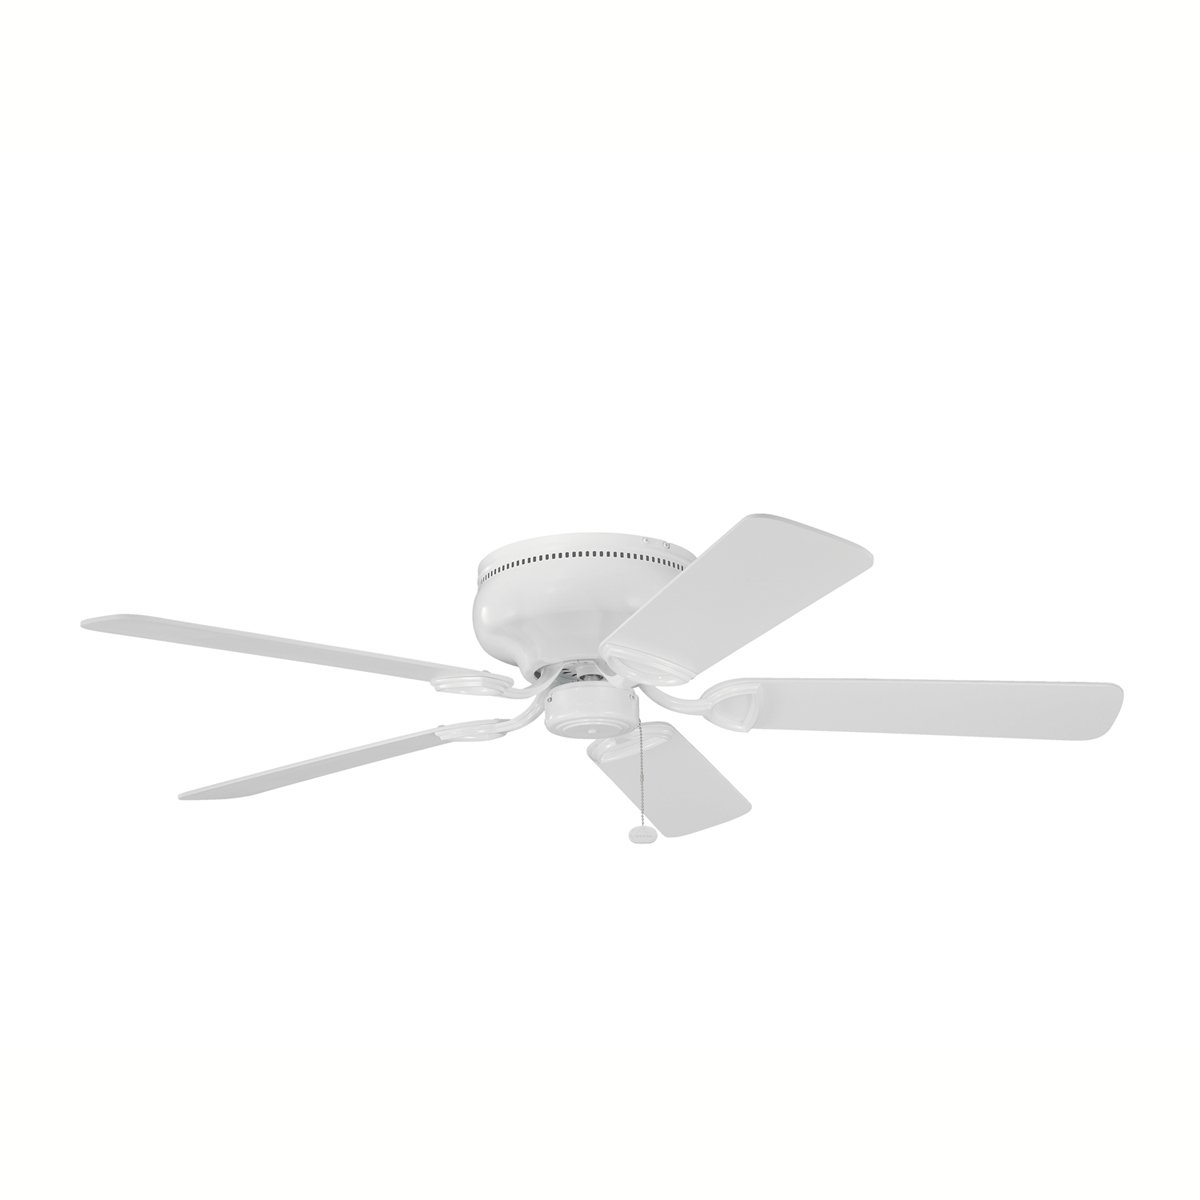 Kichler 339017WH 42 Ceiling Fan